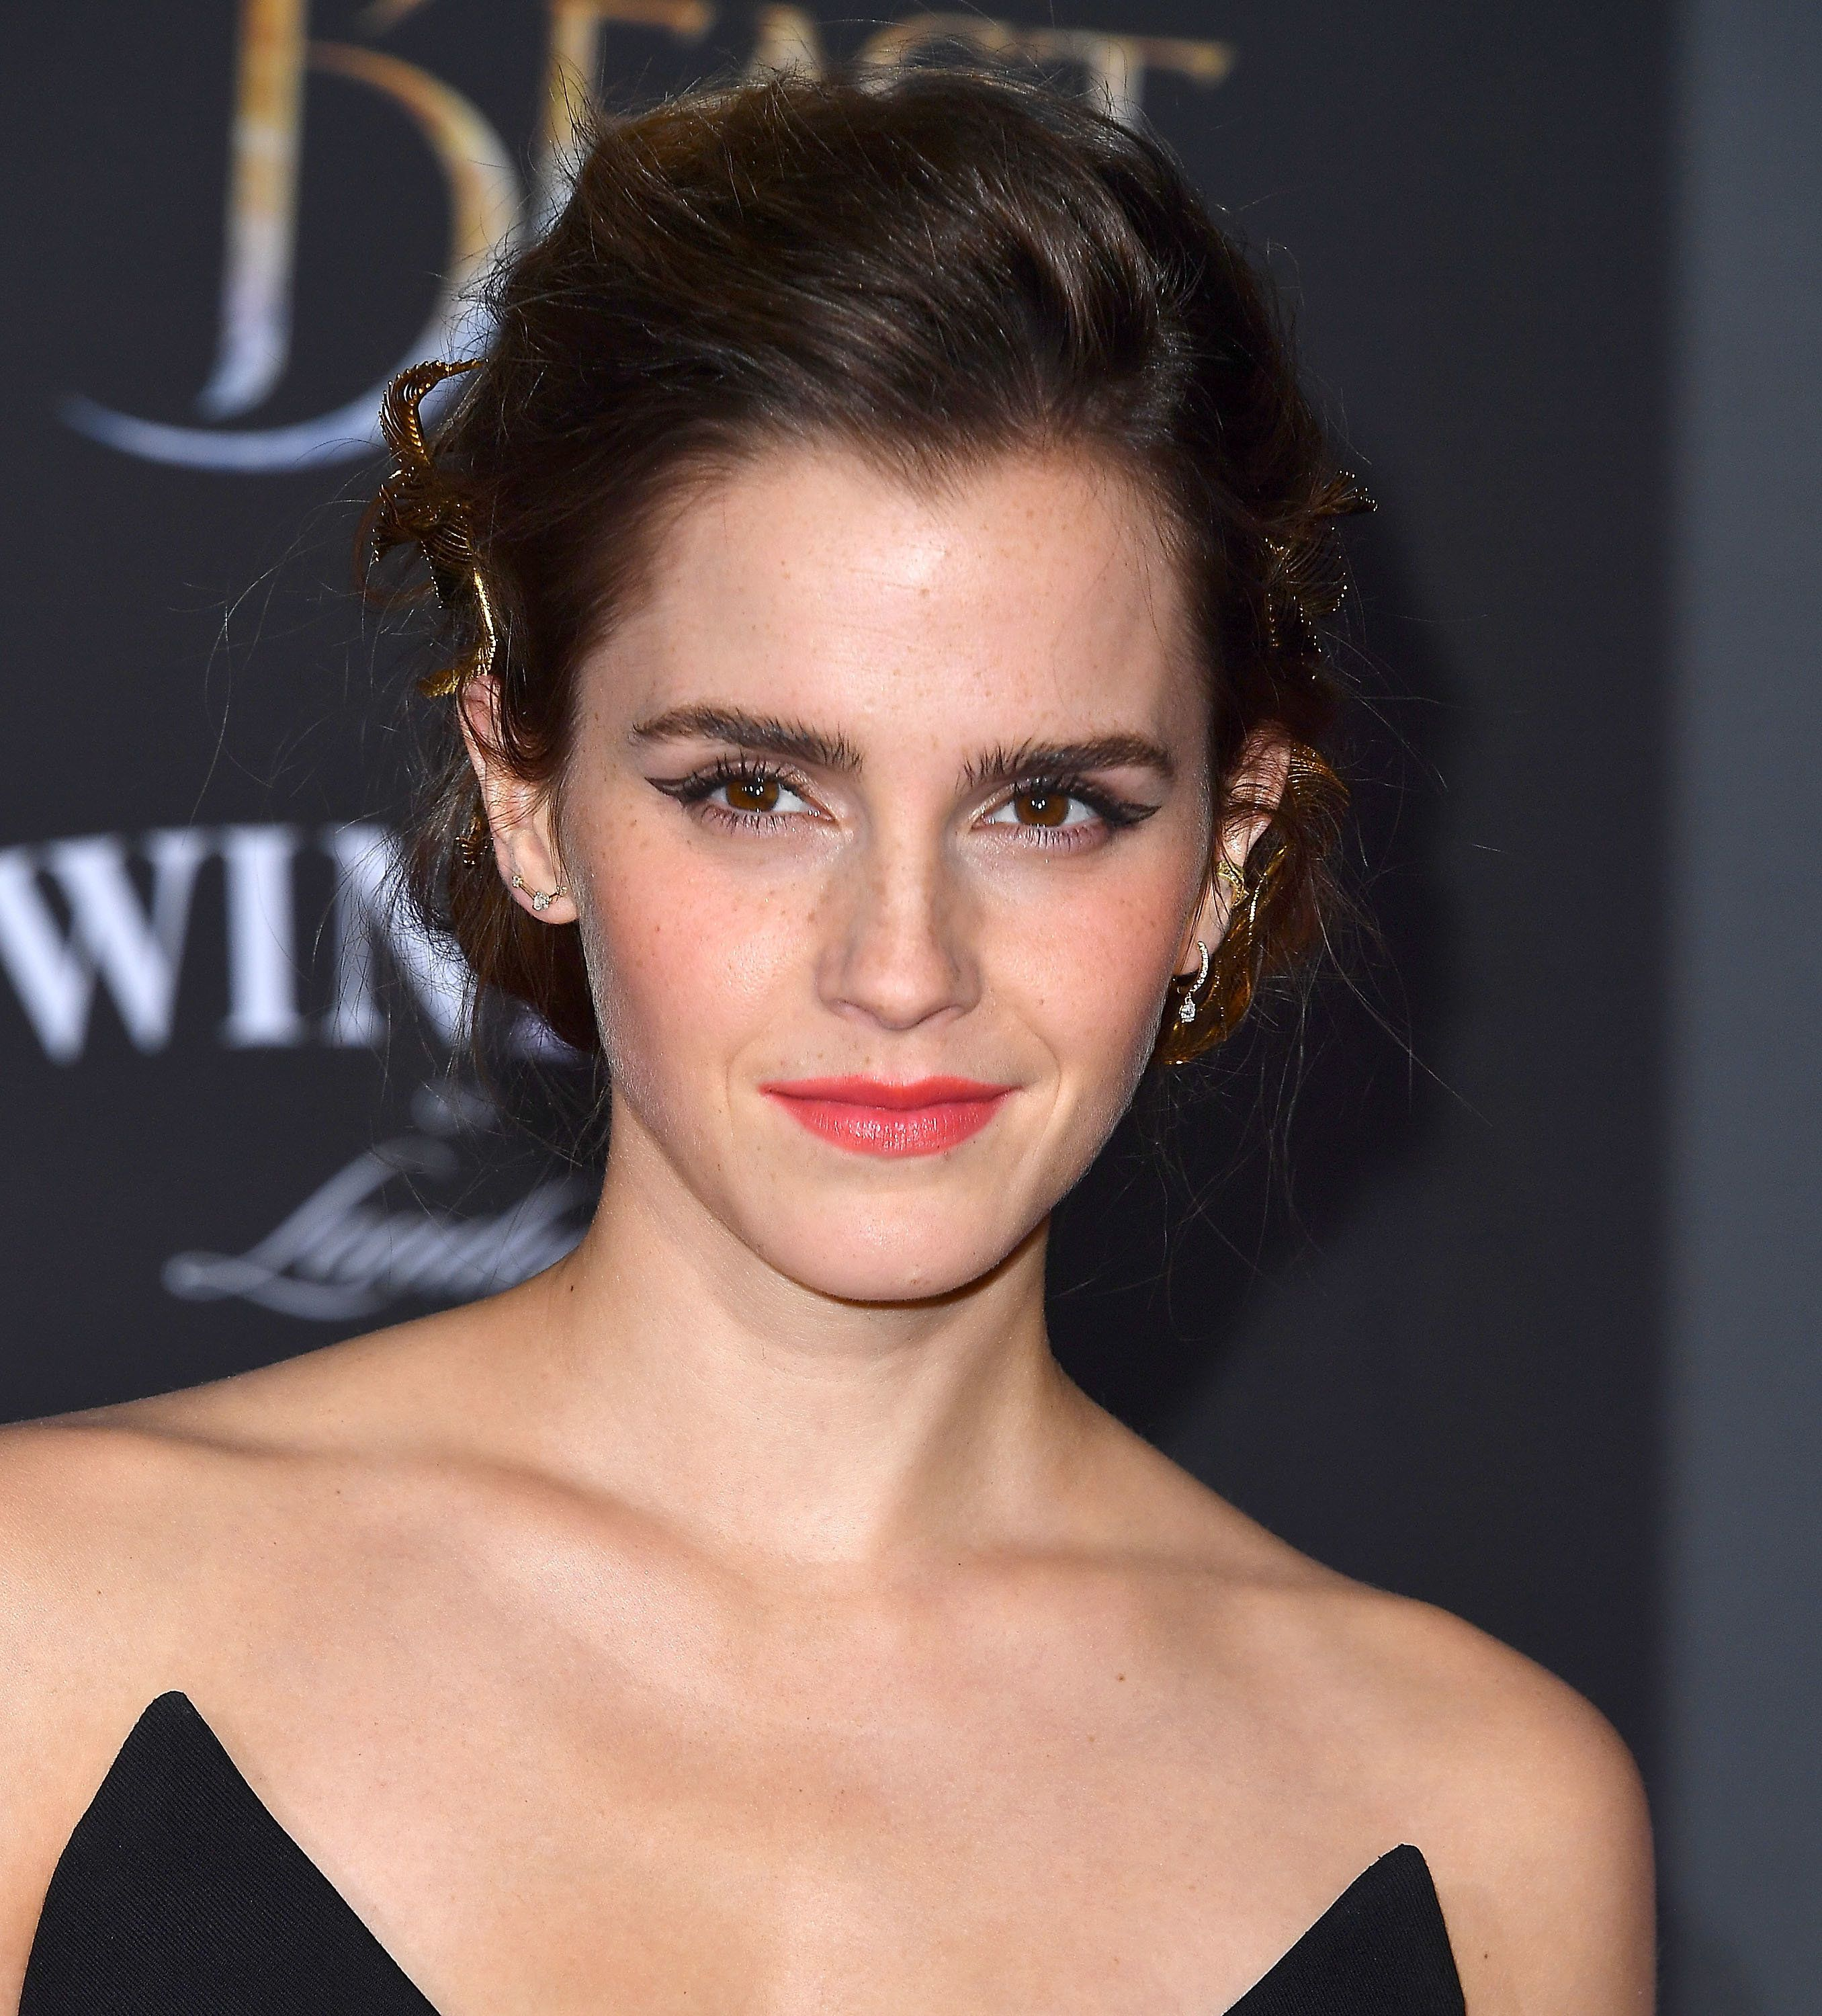 Emma Watson Conditions Her Pubic Hair And She's Not Afraid To Tell Us